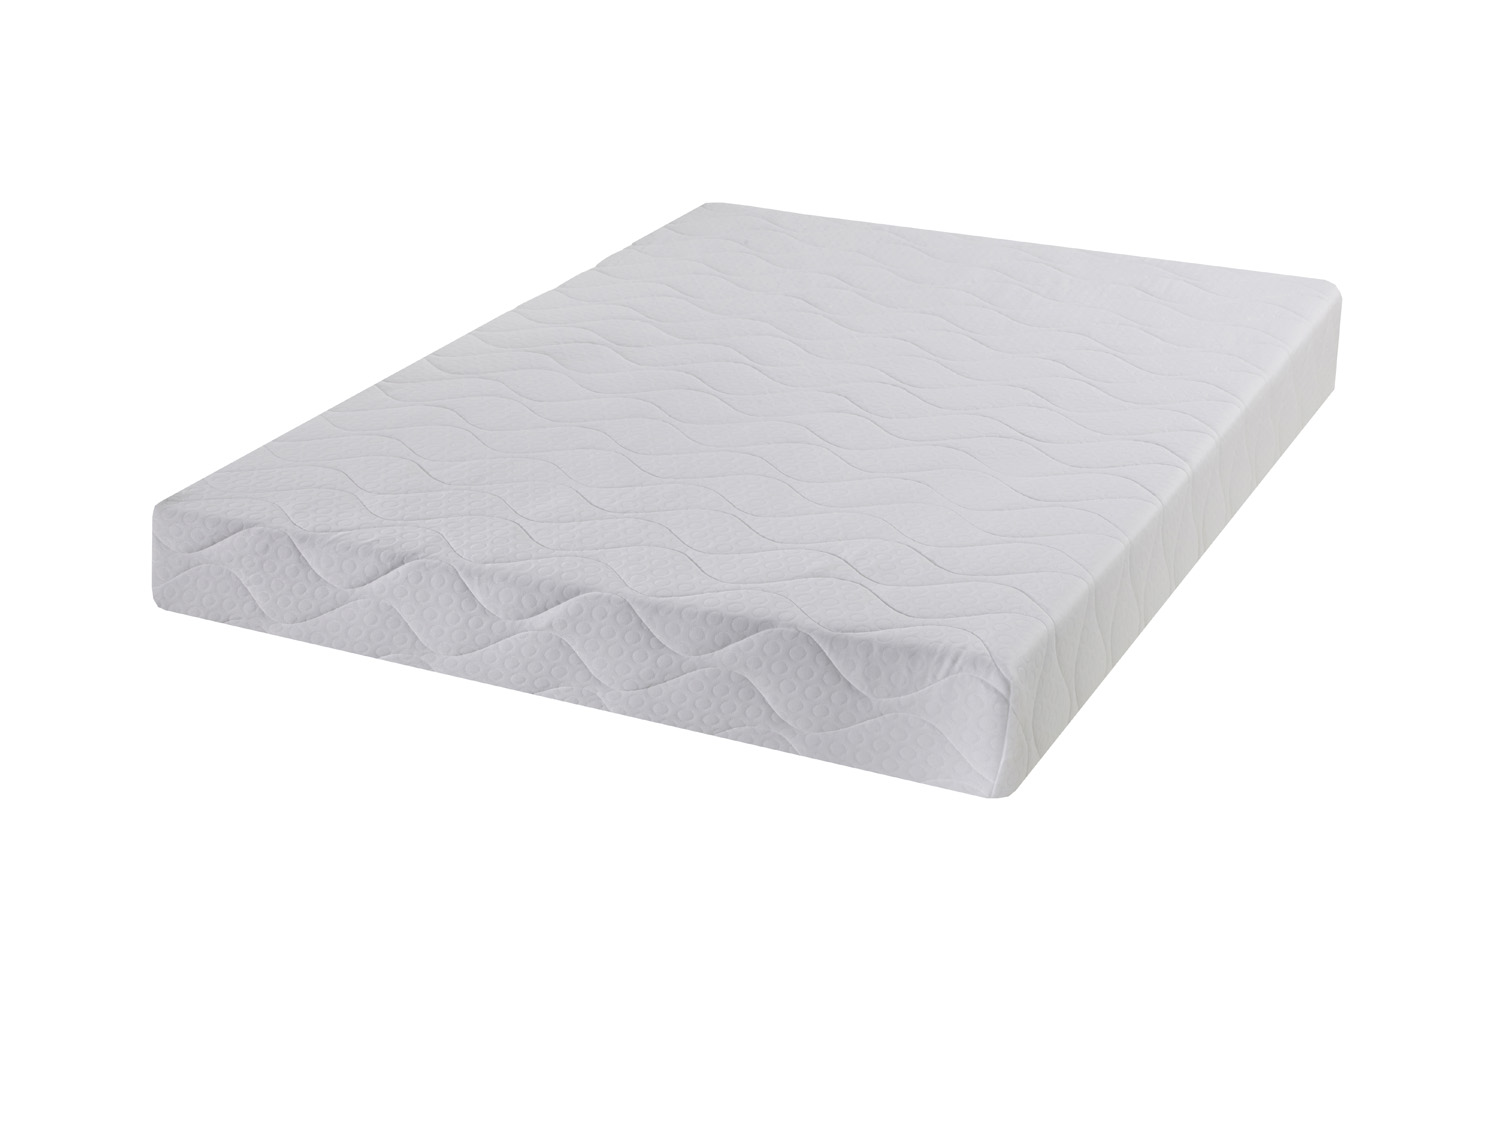 Pureflex 4ft6 double memory premium quilted mattress